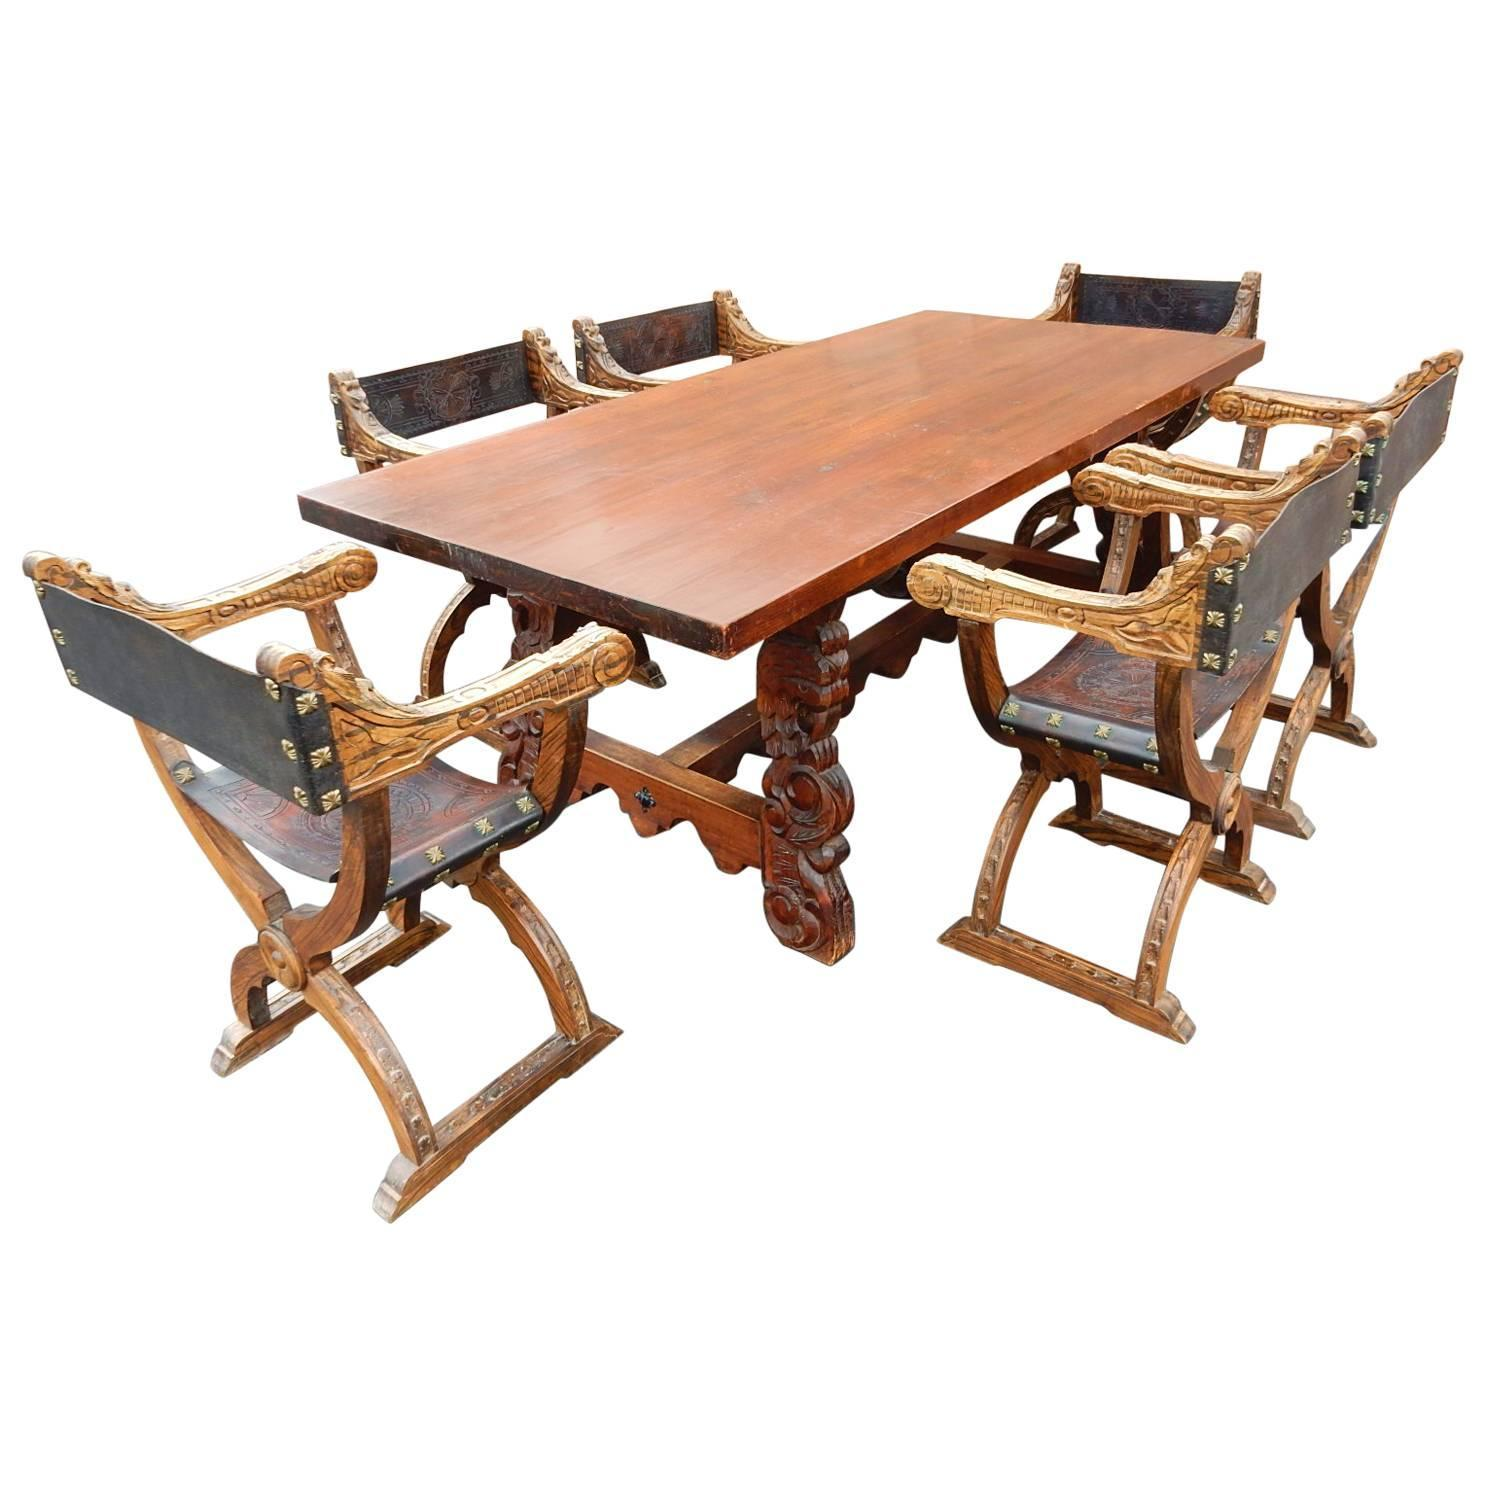 Spanish Colonial Dining Table with Six Elaborate Carved Wood and